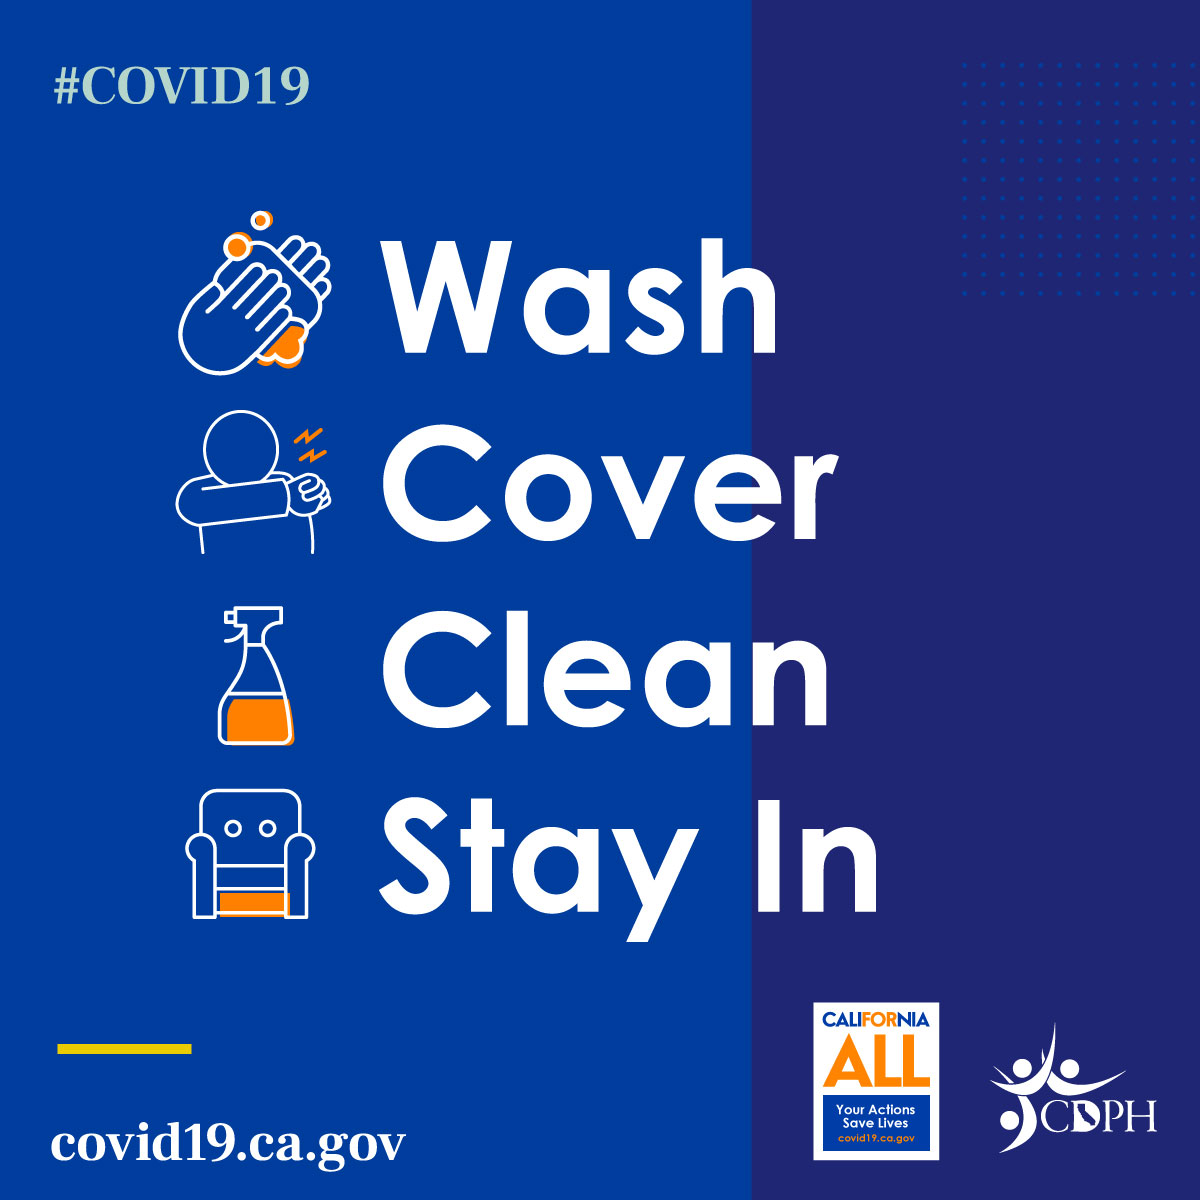 Wash, Cover, Clean, Stay In